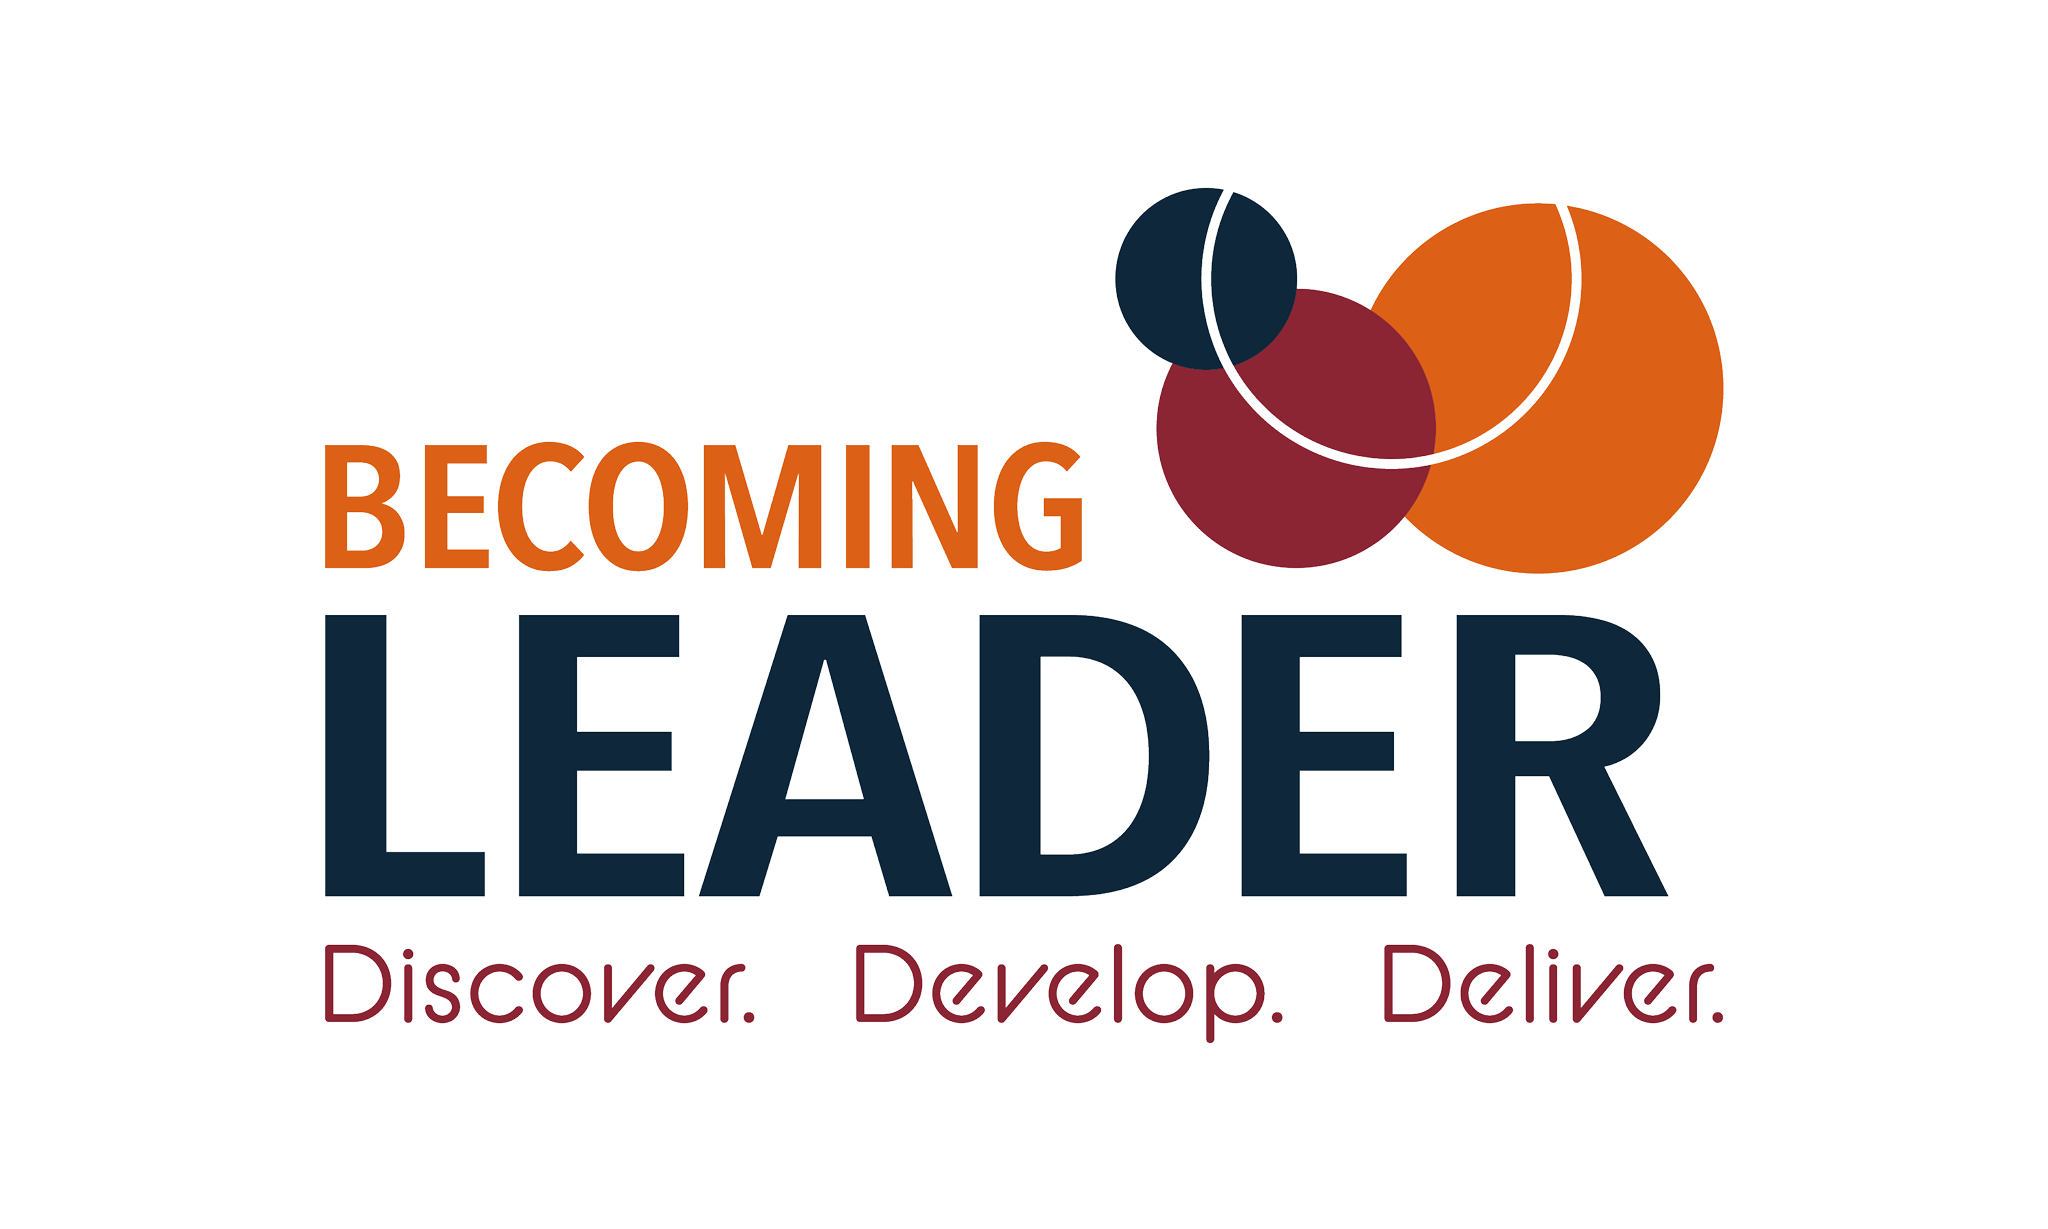 Becoming Leader